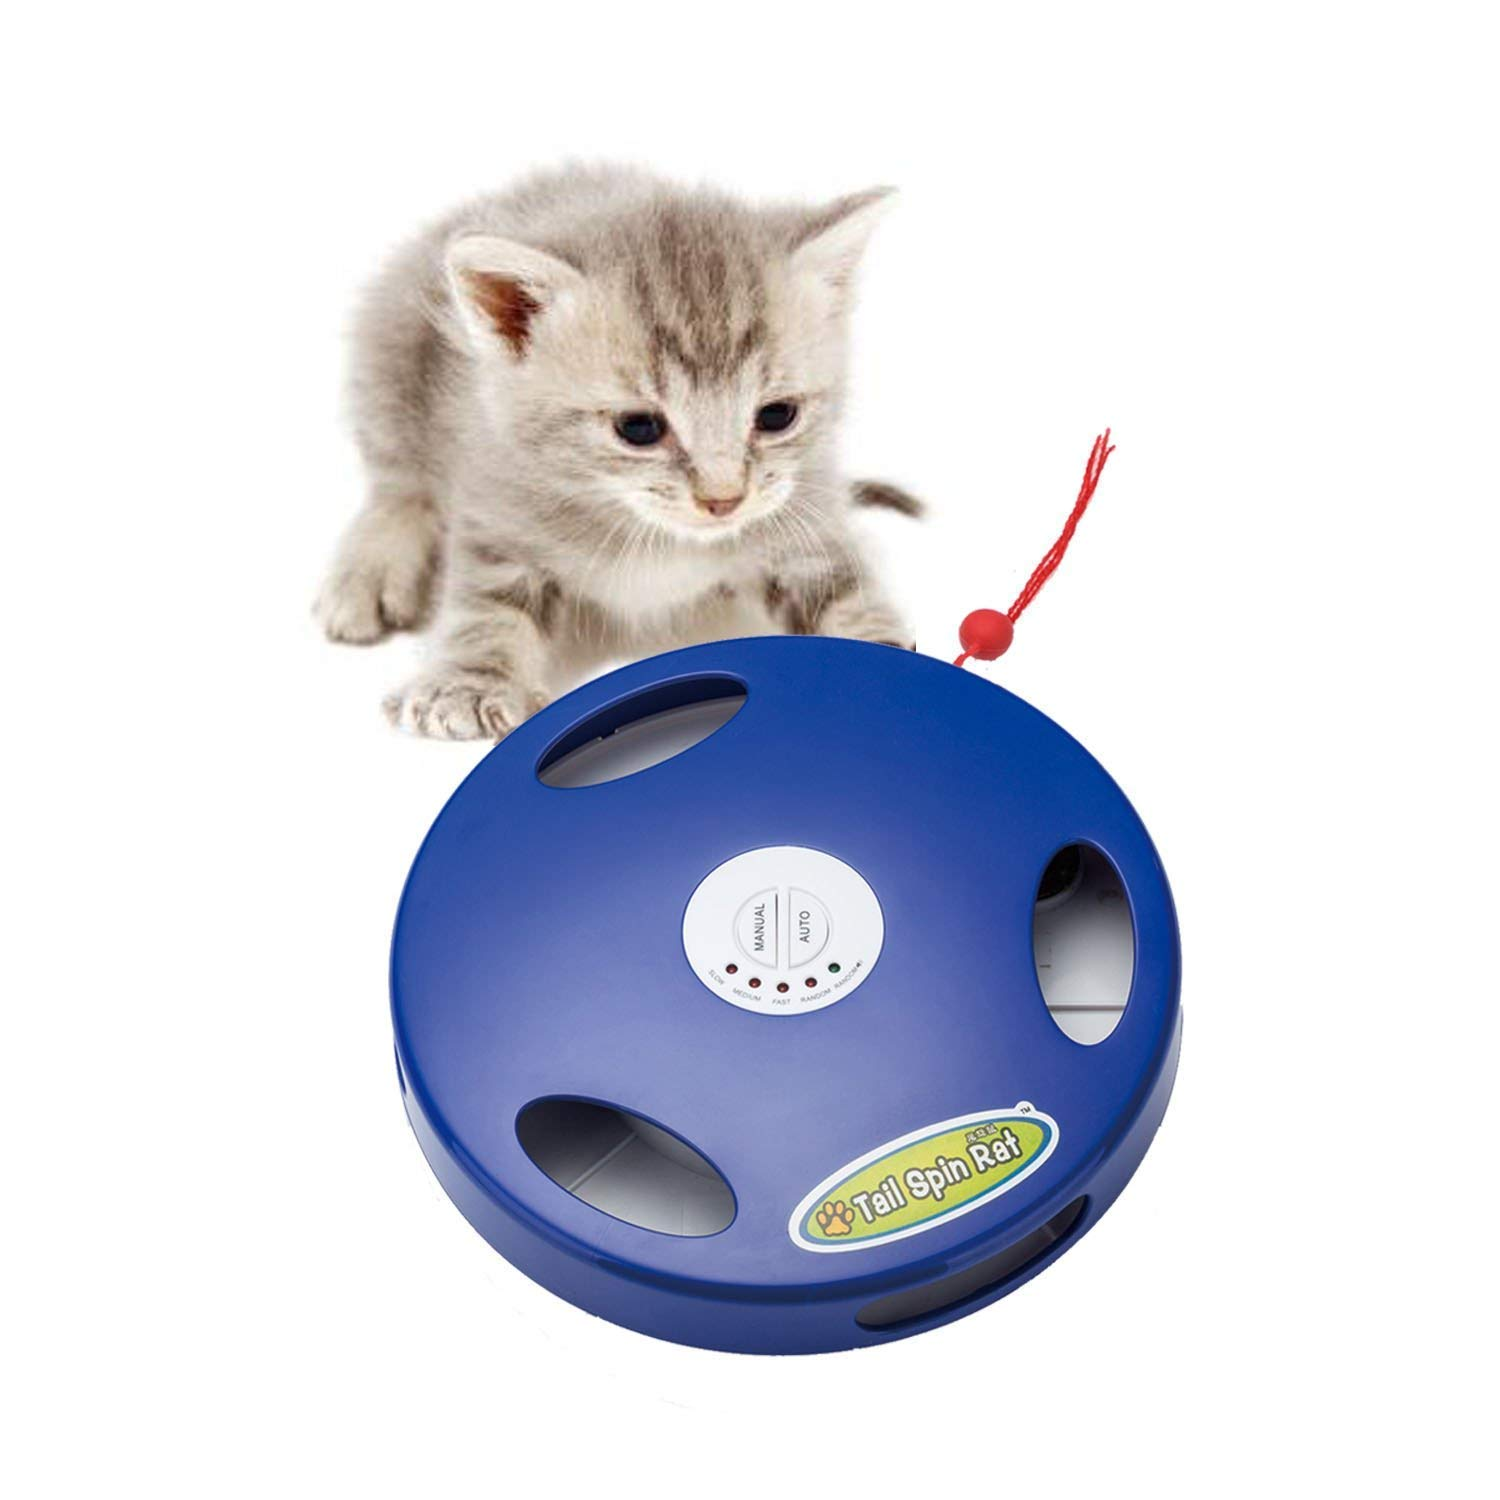 Electric Cat Toy-Excitement for Pet Kitty Kitten, Exercise Increase, Stress Relief, Mimic Rat Sound Squeak, Floor & Wall Inssizetion